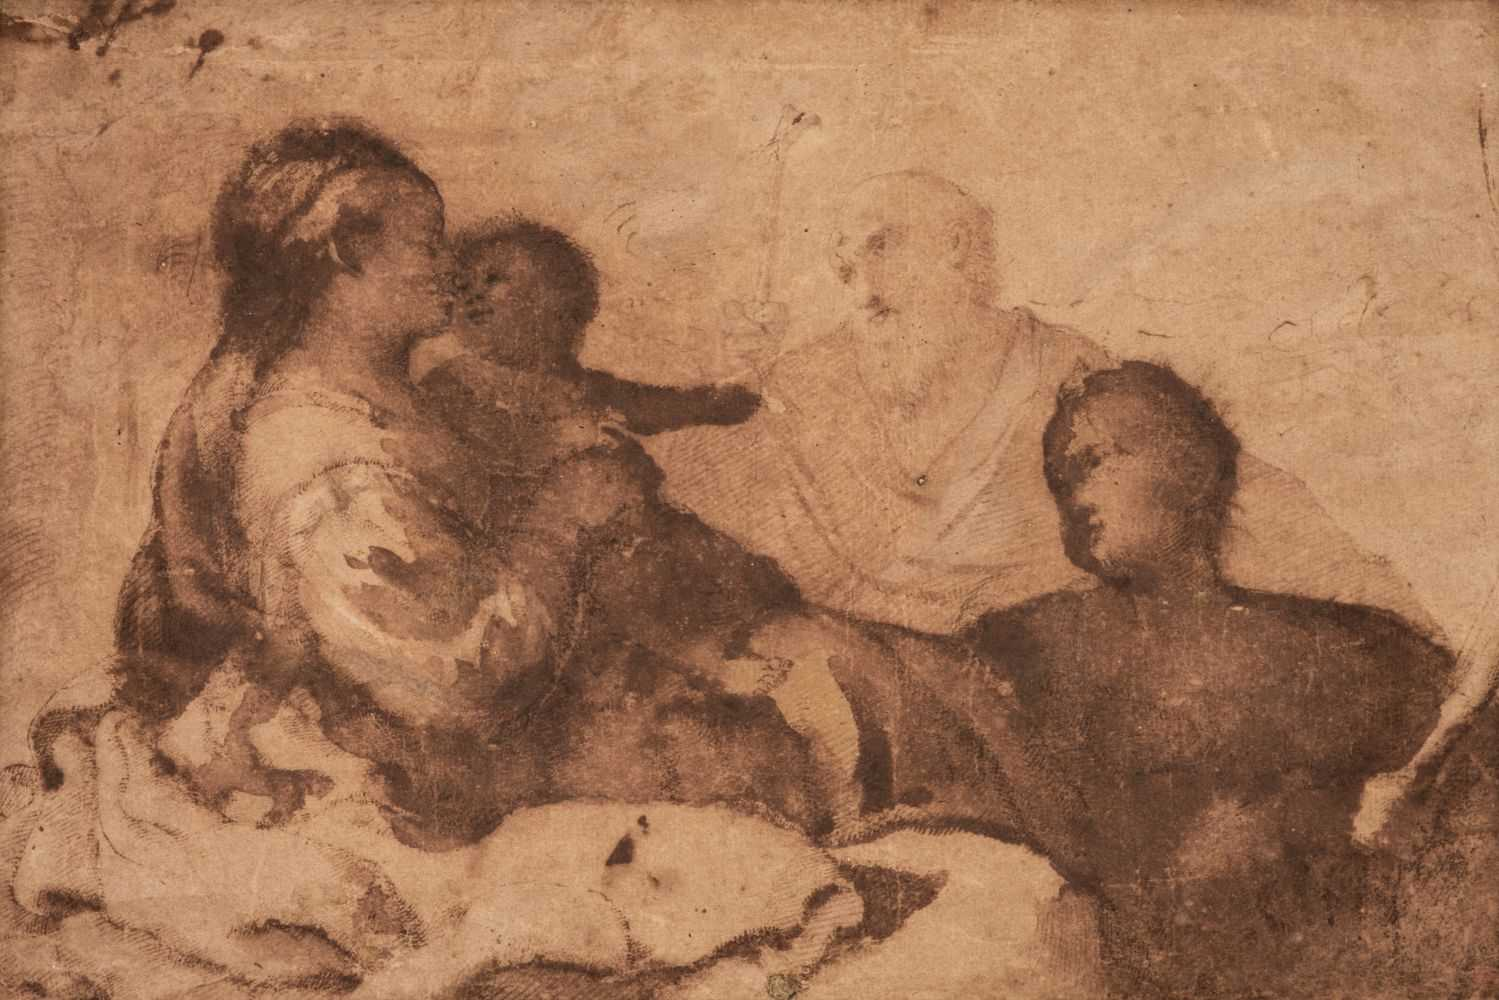 Lot 24 - Mola (Pier Francesco, 1612–1666). Holy Family, pen and brown ink and wash